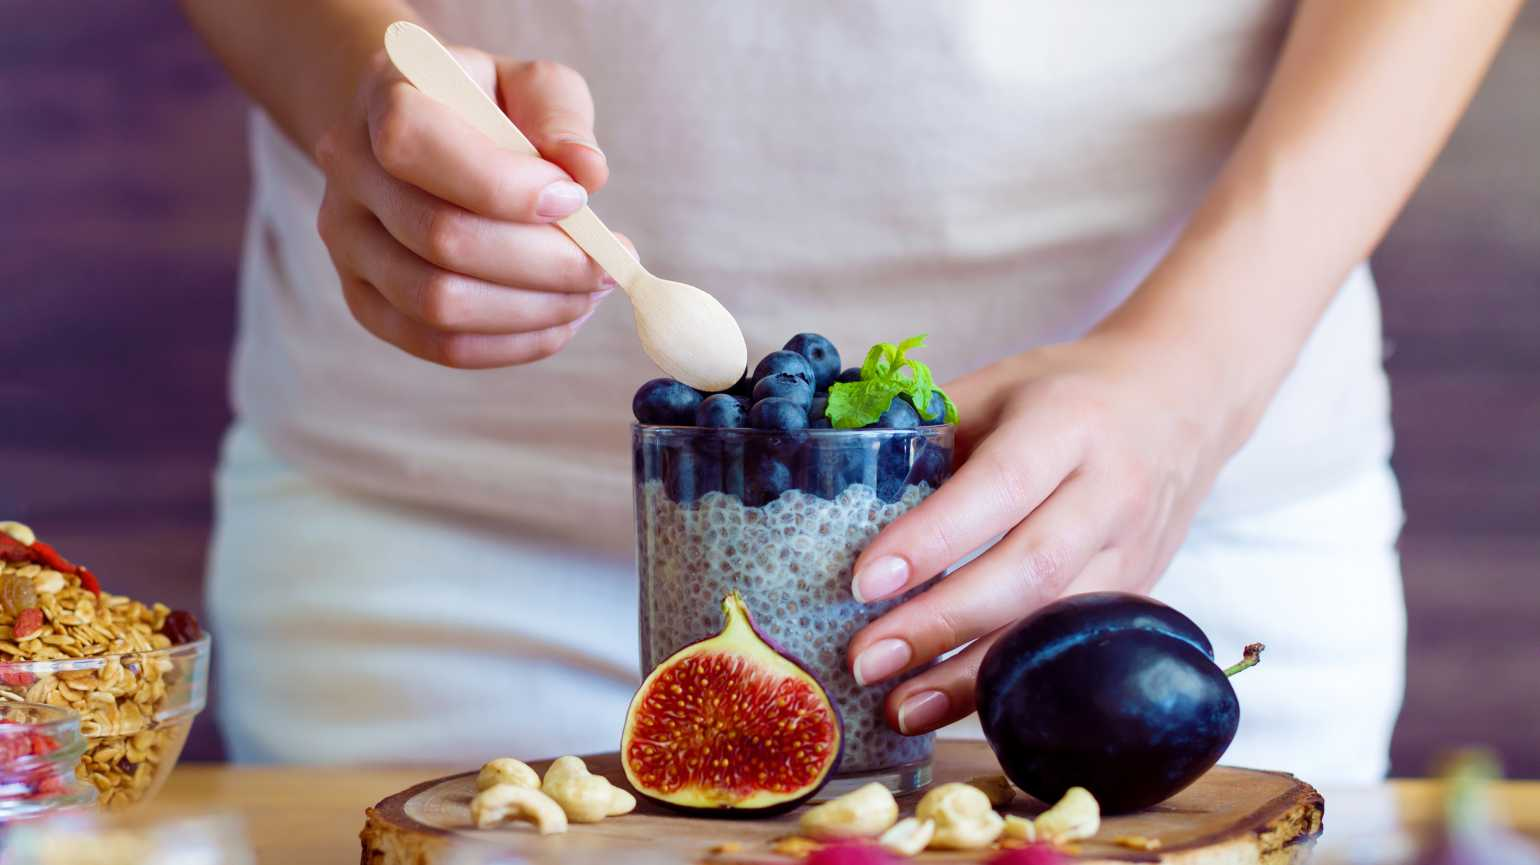 5 Key Nutrients for Better Gut Health